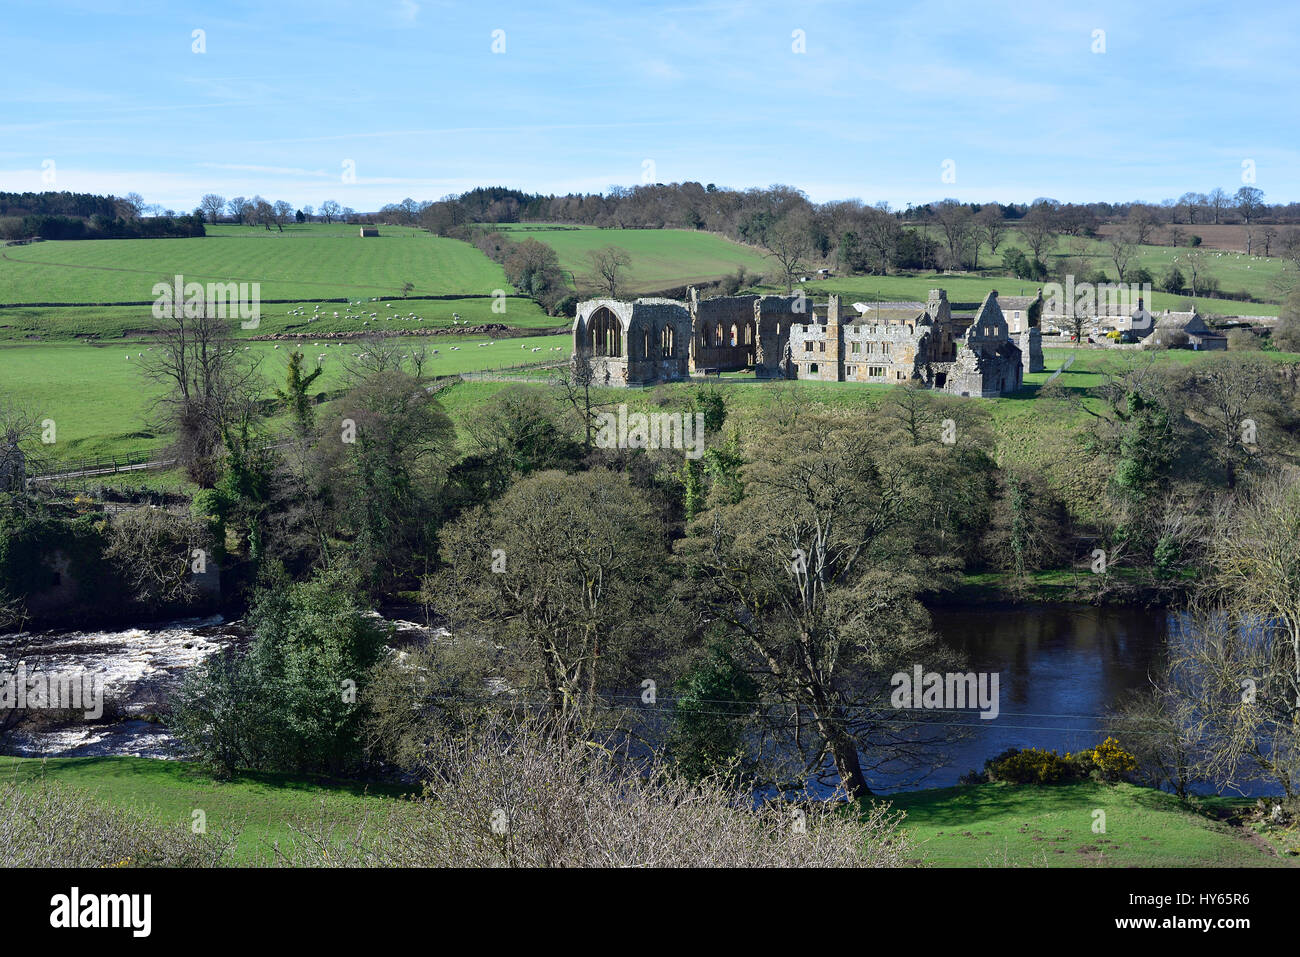 Egglestone Abbey and River Tees near Barnard Castle, seen from the B road high above the river. - Stock Image